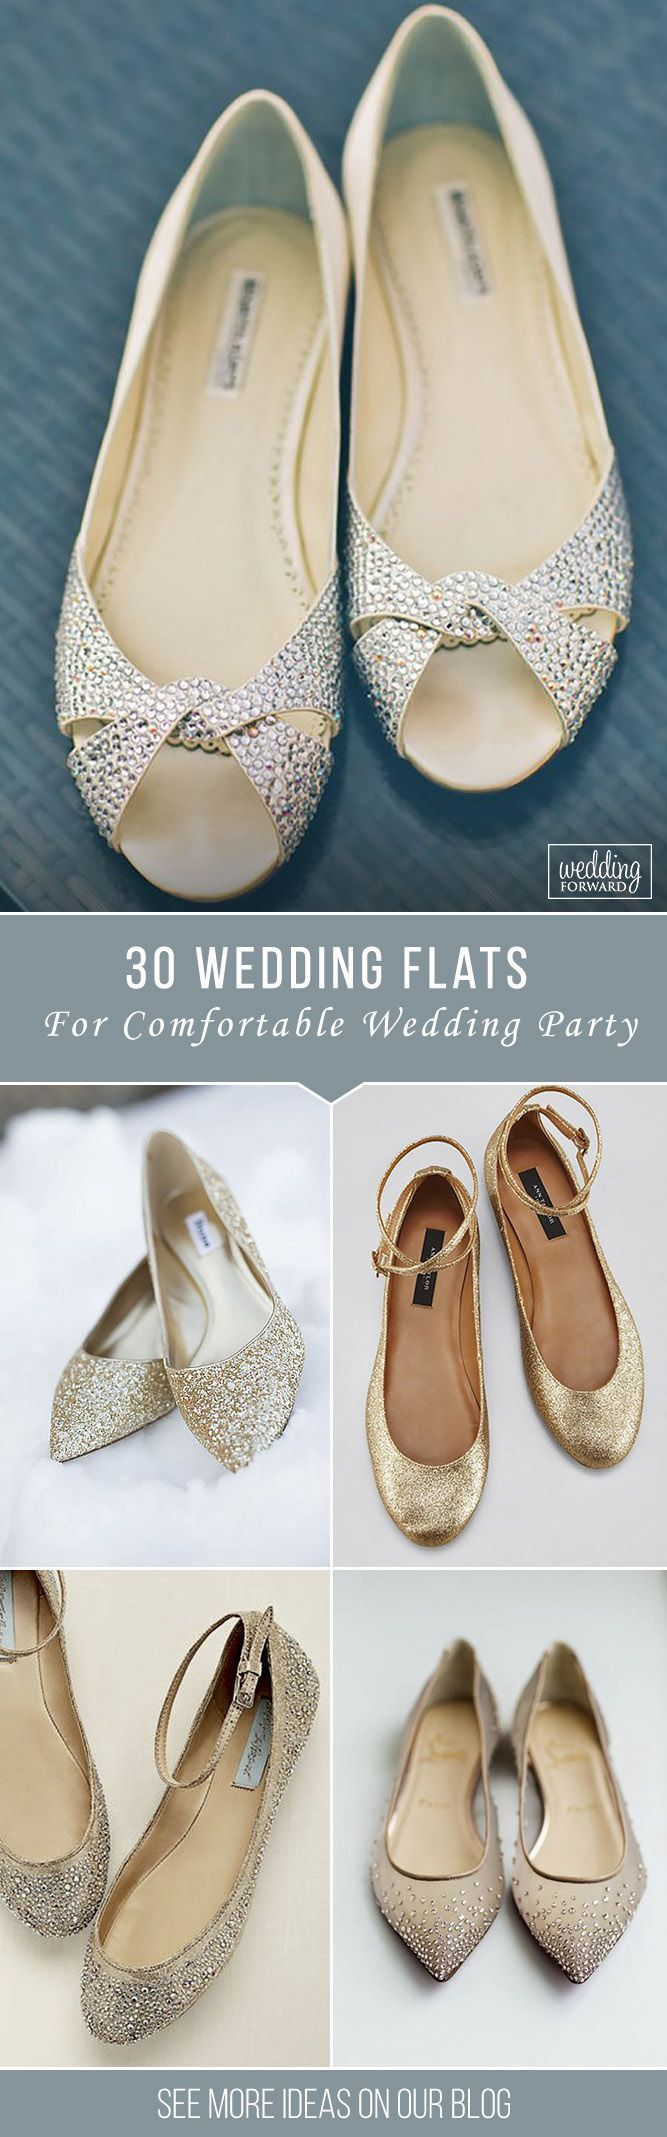 wedding shoes comfortable wedding shoes 30 Wedding Flats For Comfortable Wedding Party